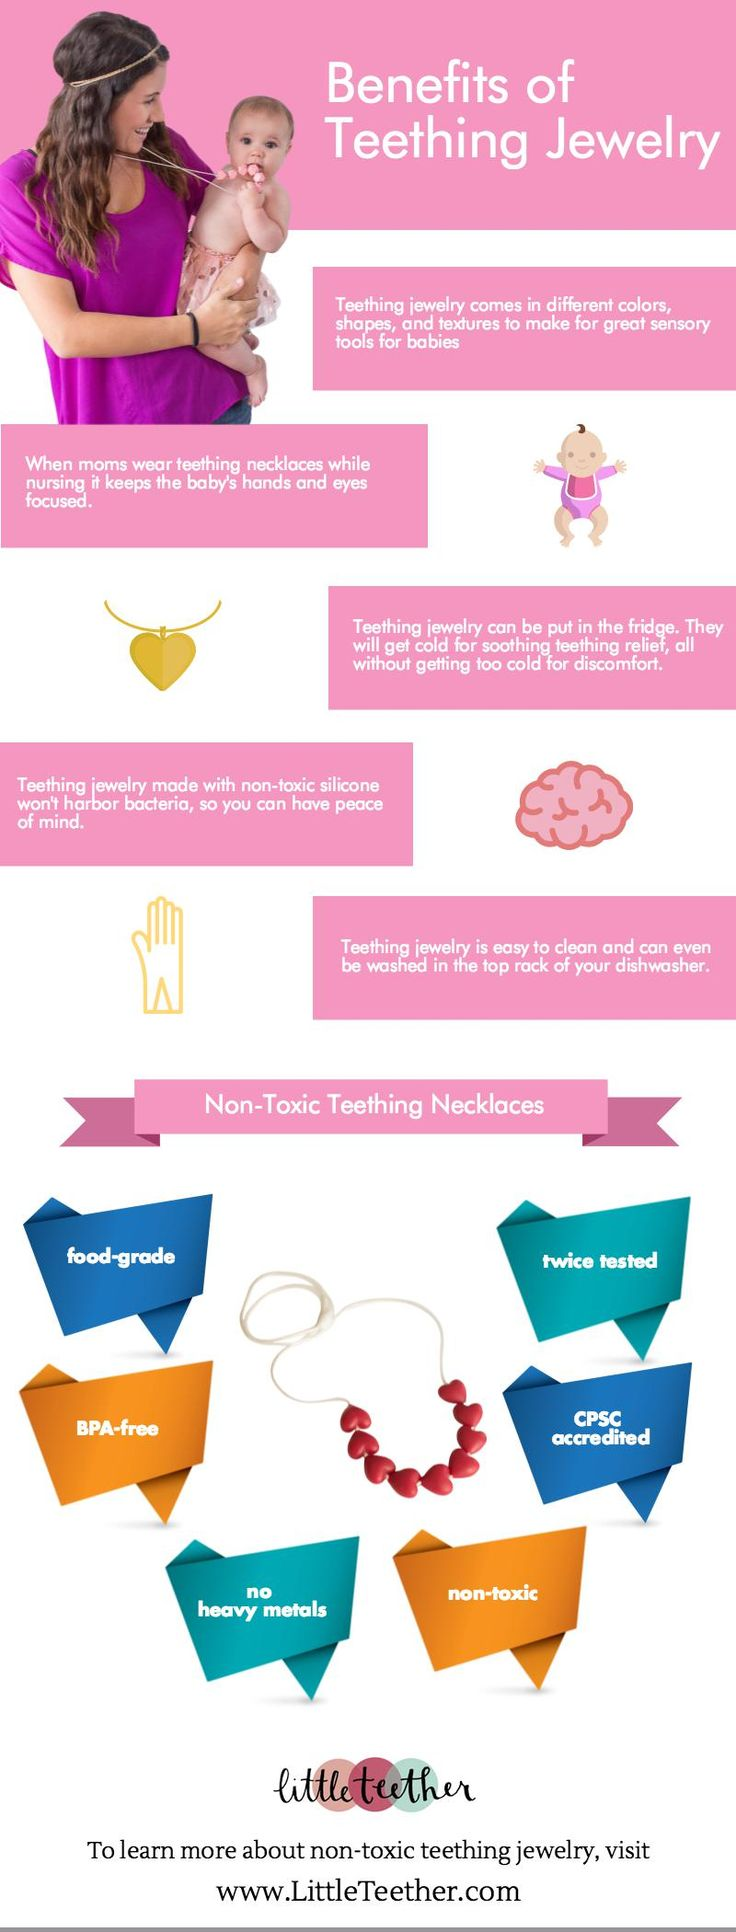 Our SEO client, Little Teether loves sharing the word about the benefits of teething jewelry. Click to read benefits of Little Teether's teething necklaces in this infographic.